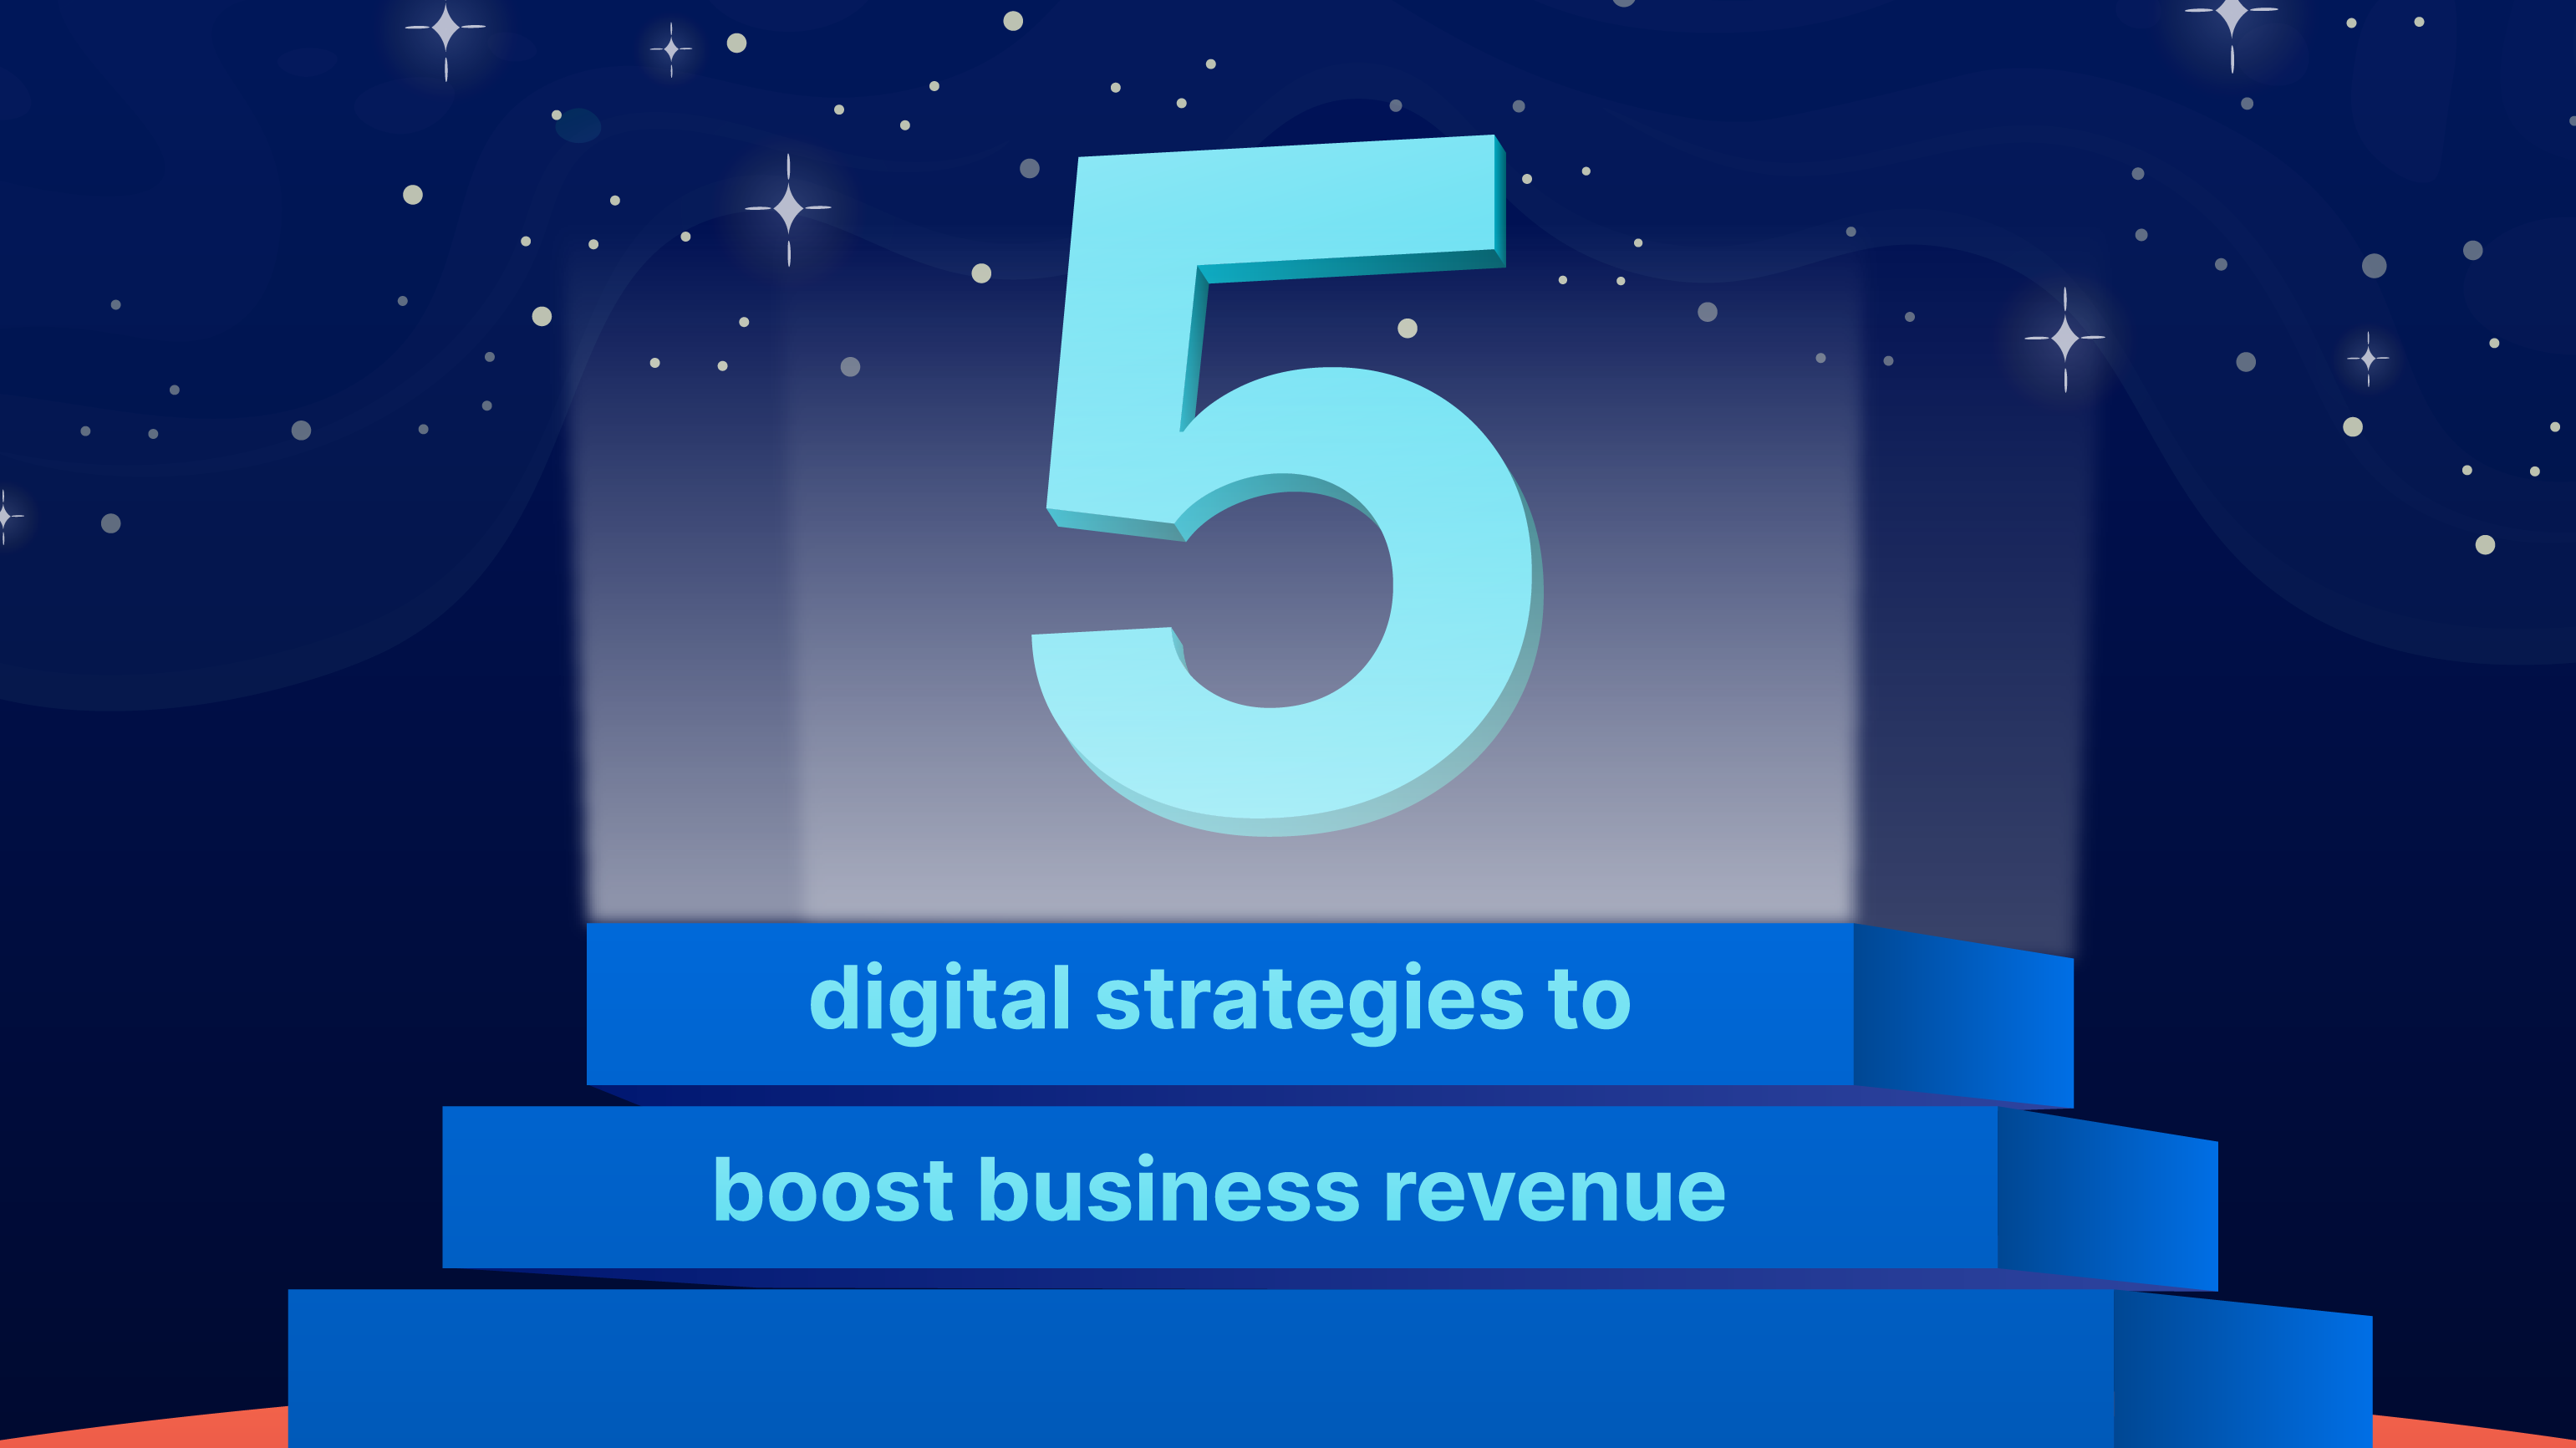 While there is more to explore in terms of digital strategies, these are the five most important ones to implement in order to maximize your revenue. (Illustration: Kata.ai)